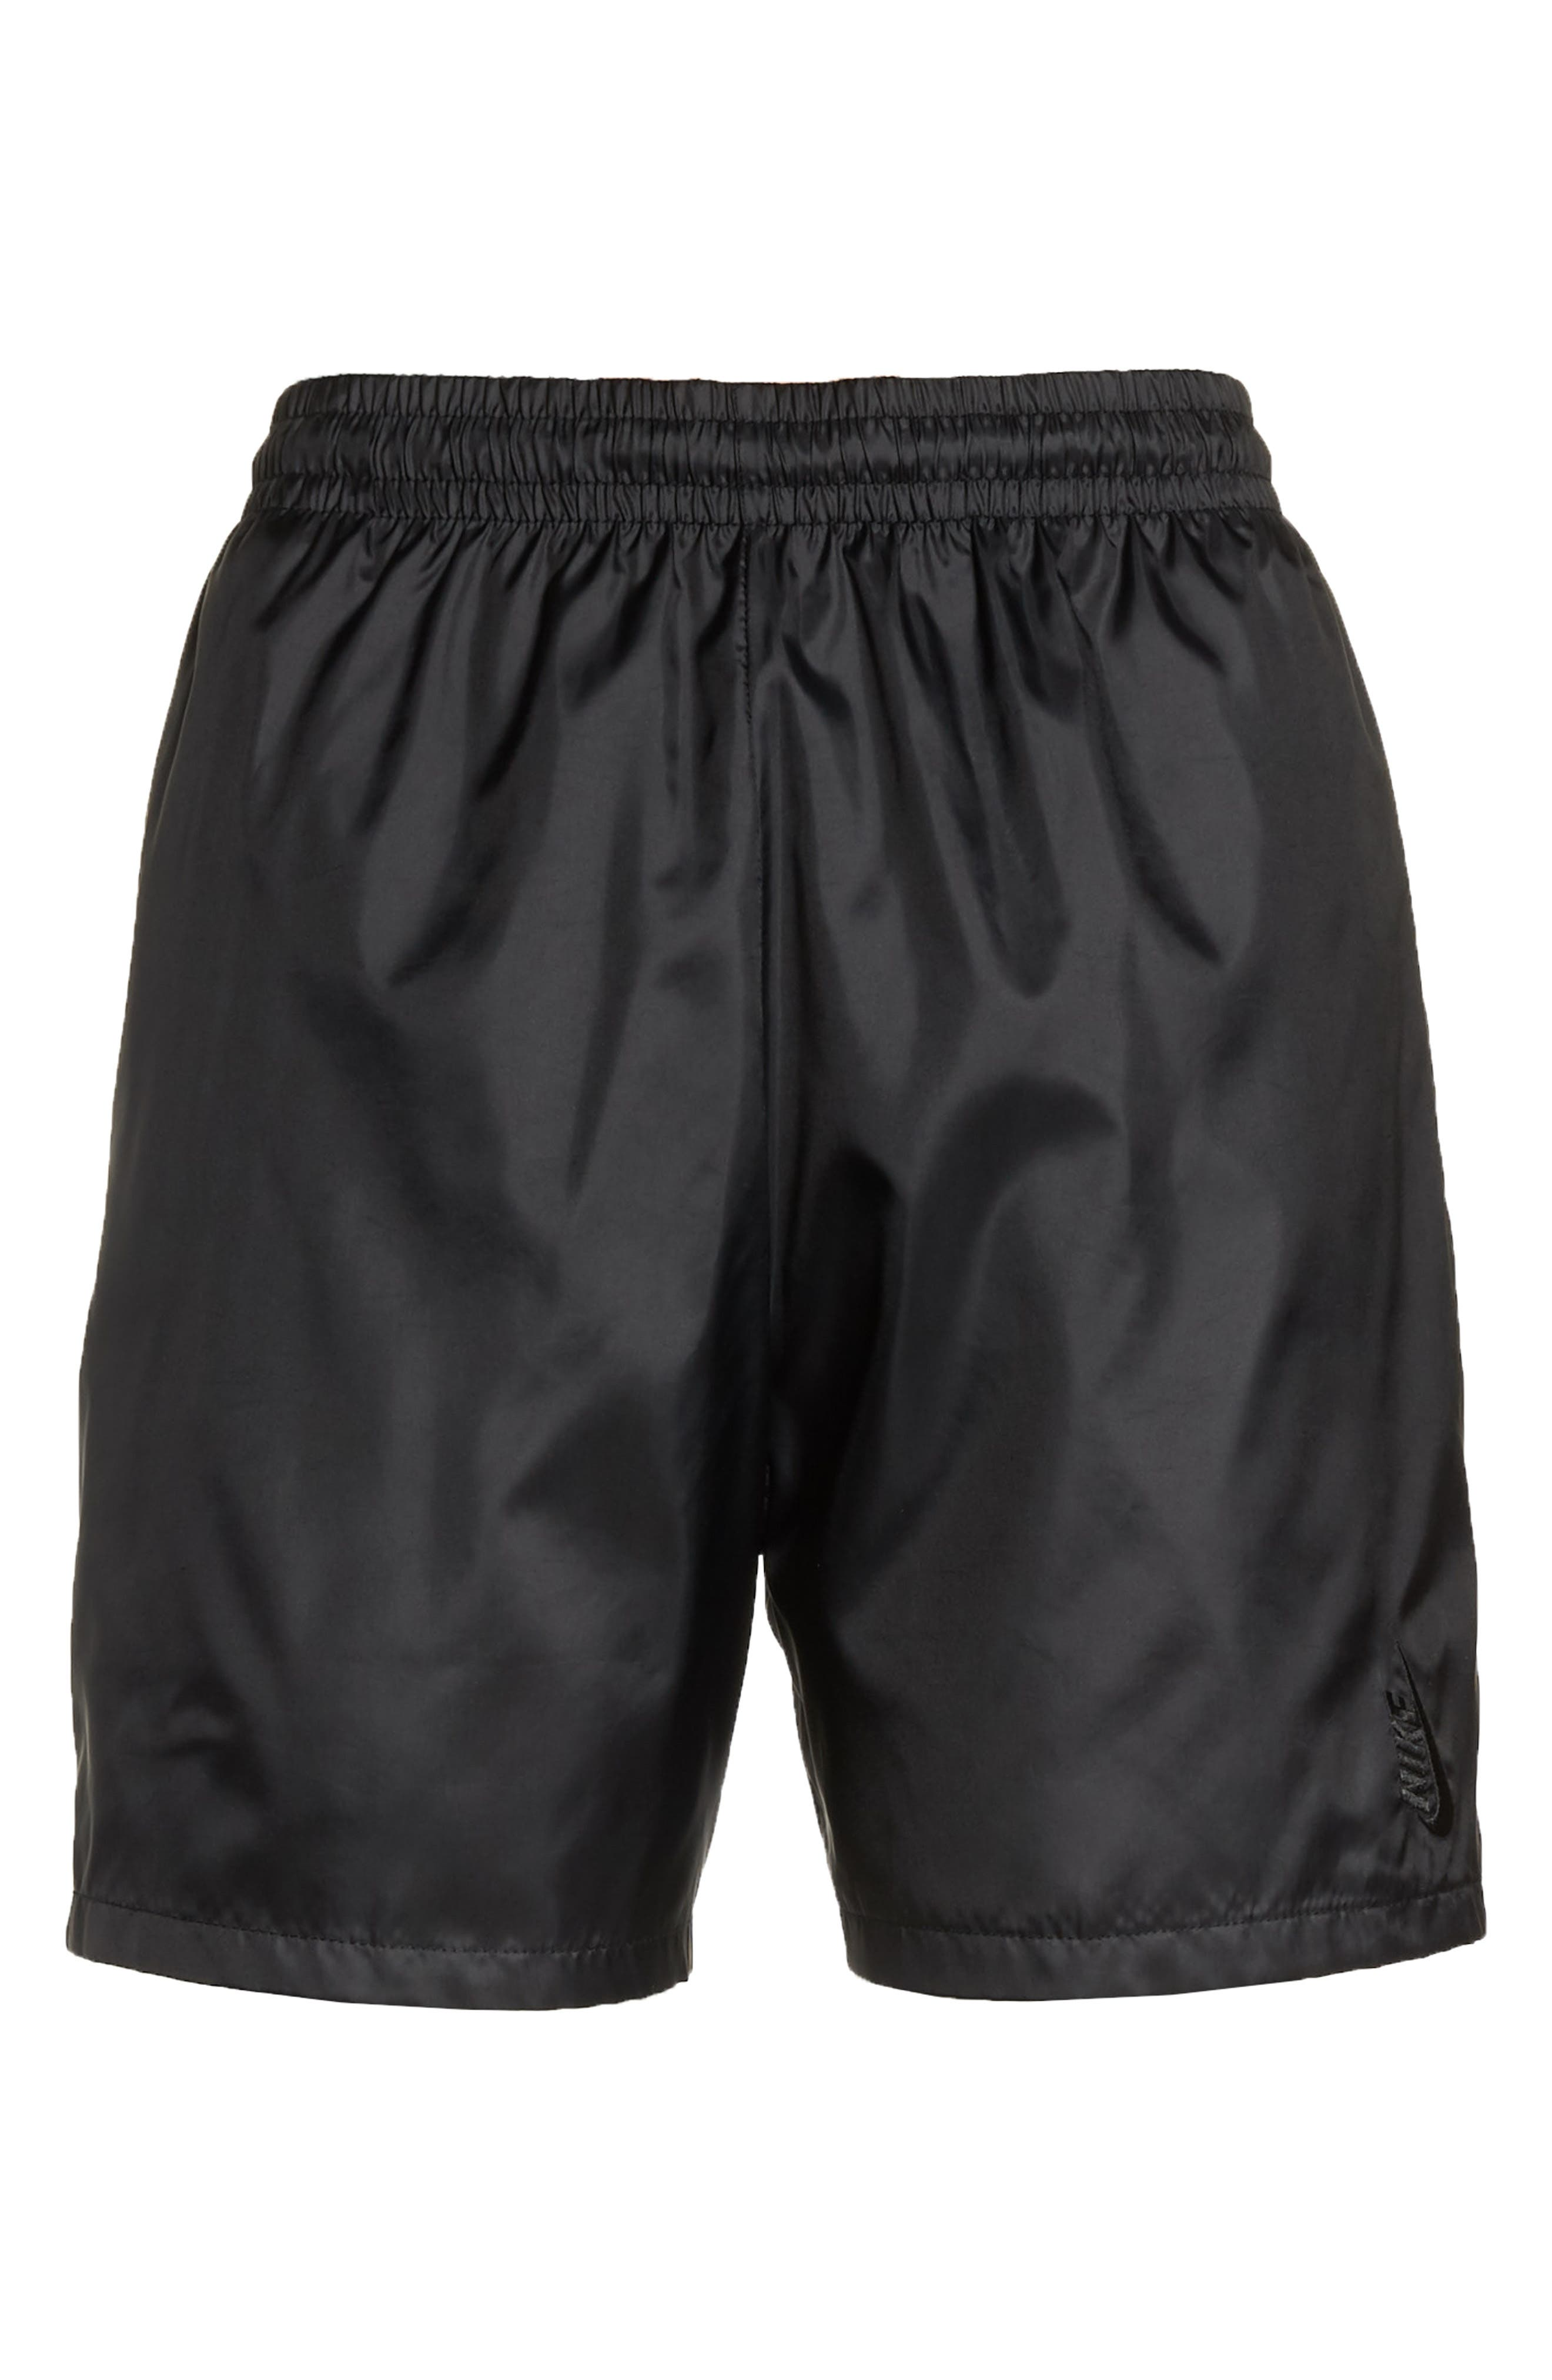 LAB COLLECTION UNISEX HERITAGE SHORTS